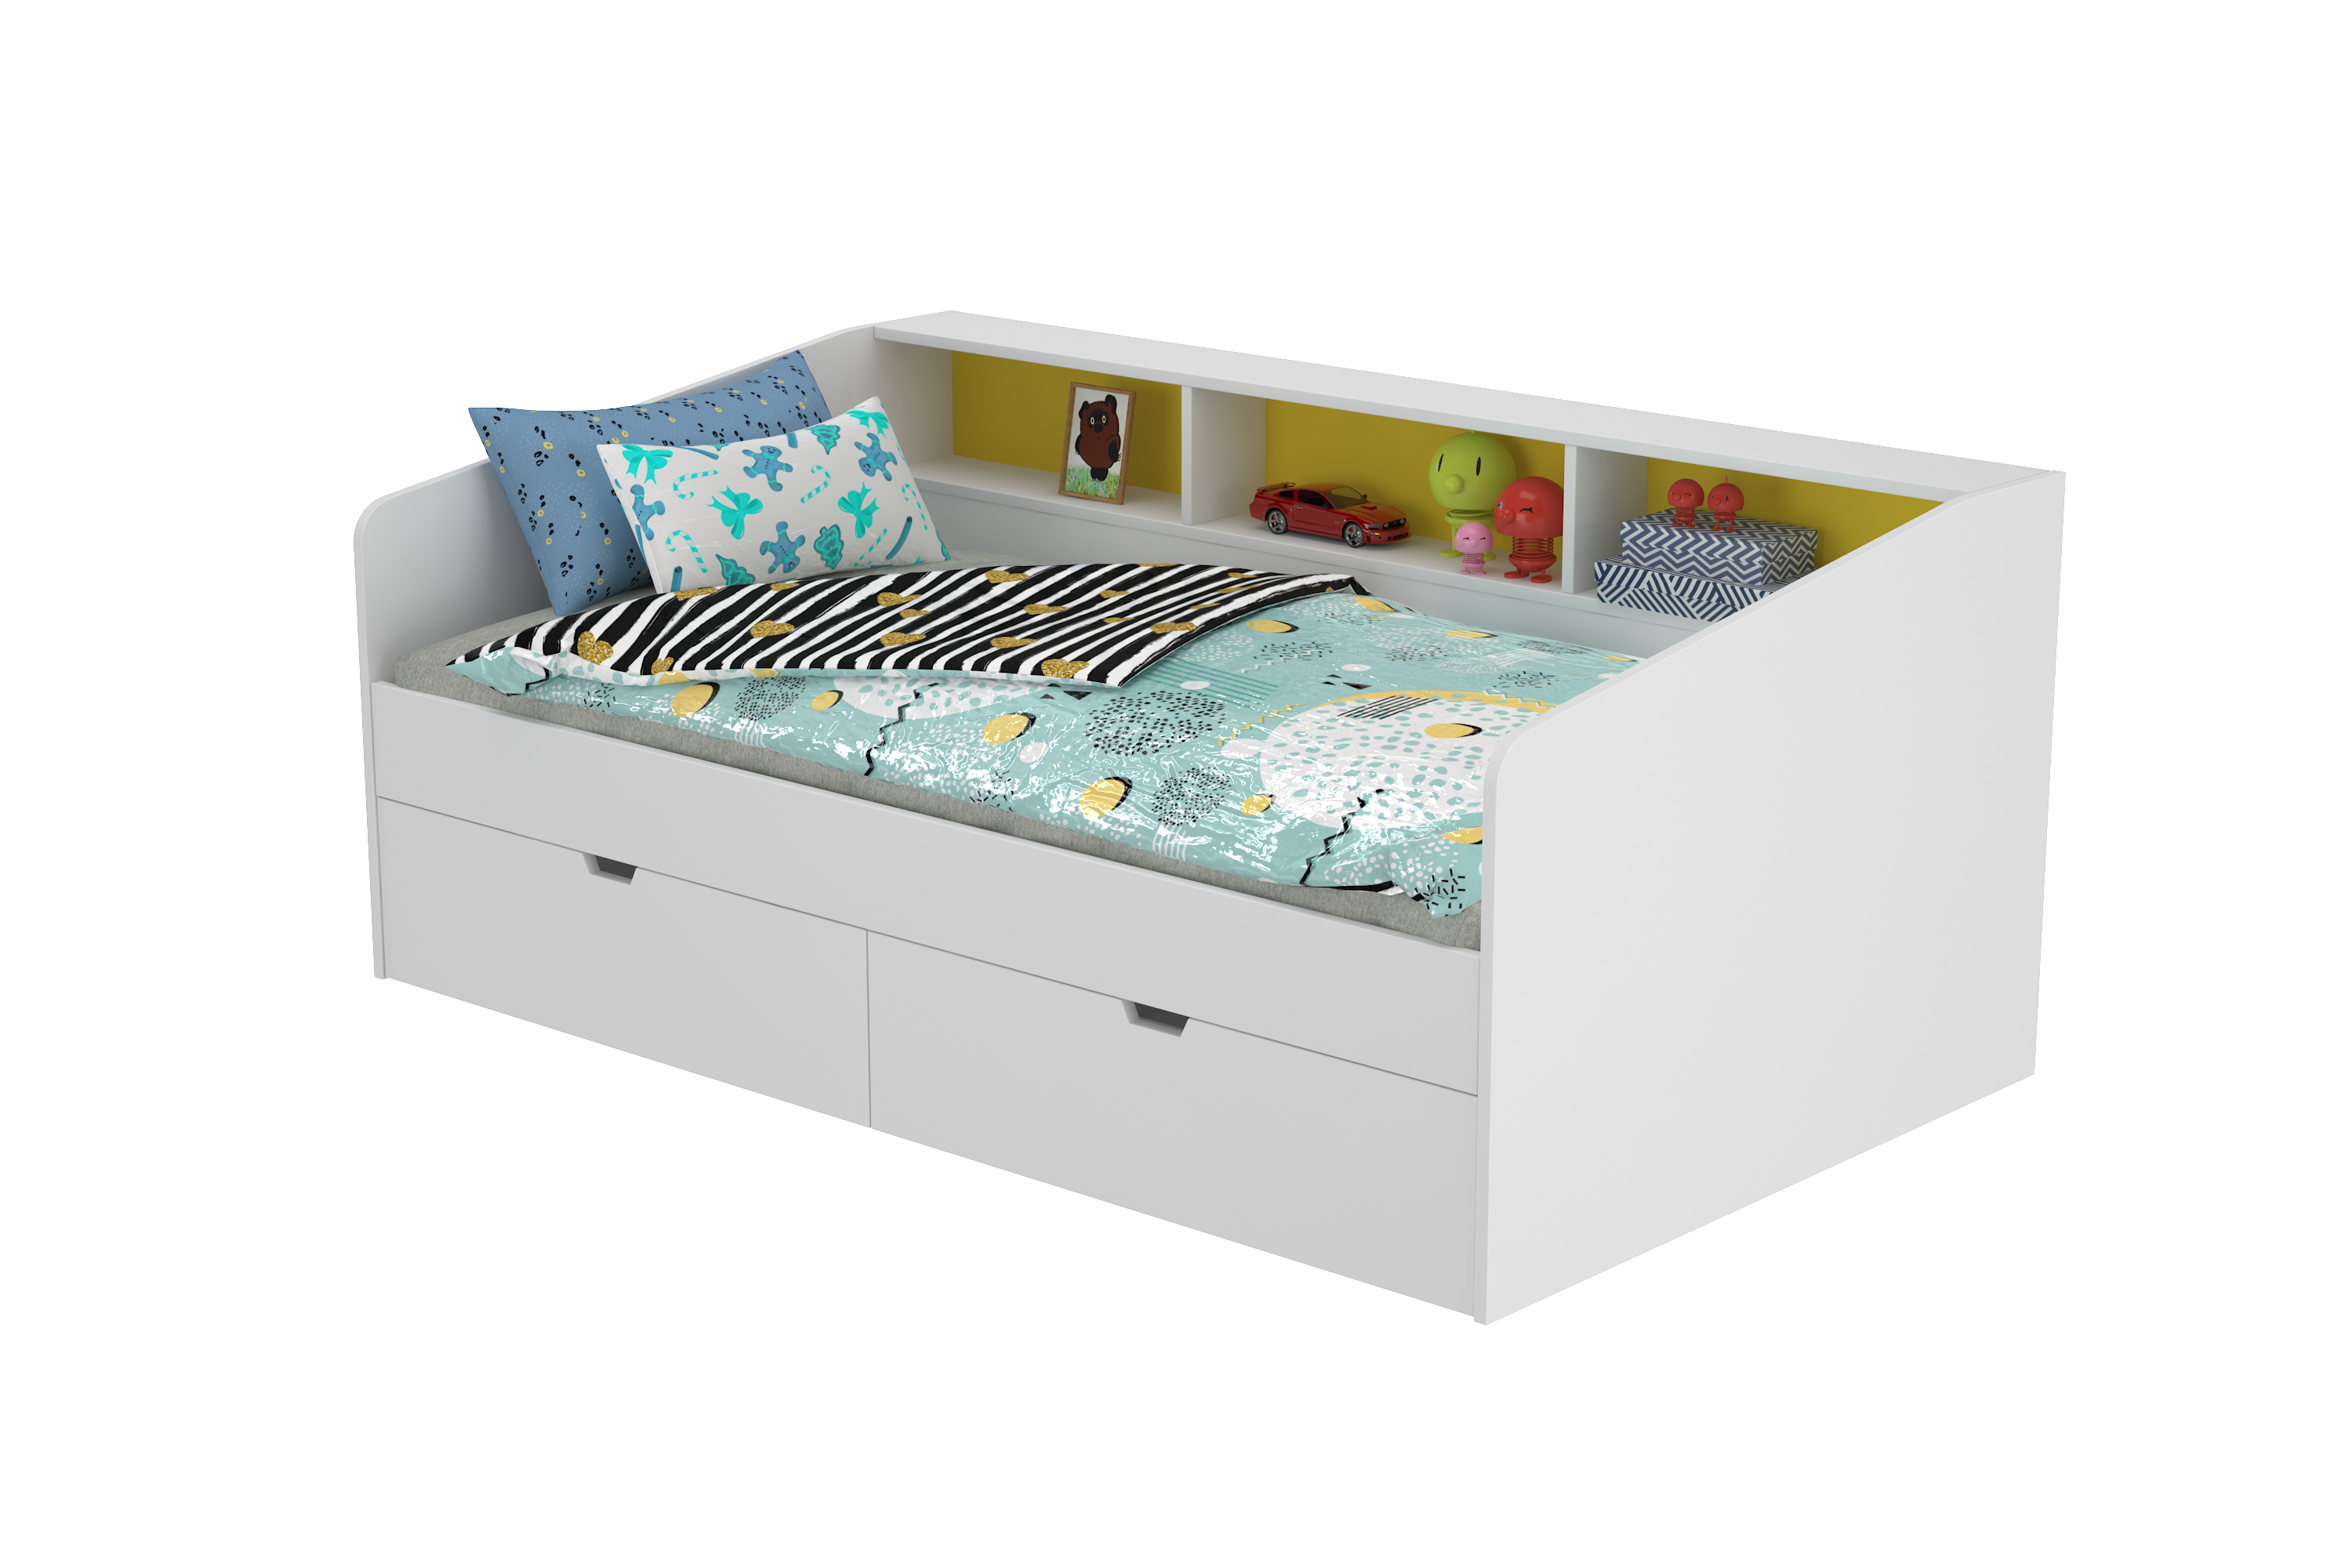 Cuckoo Single Bed with Storage